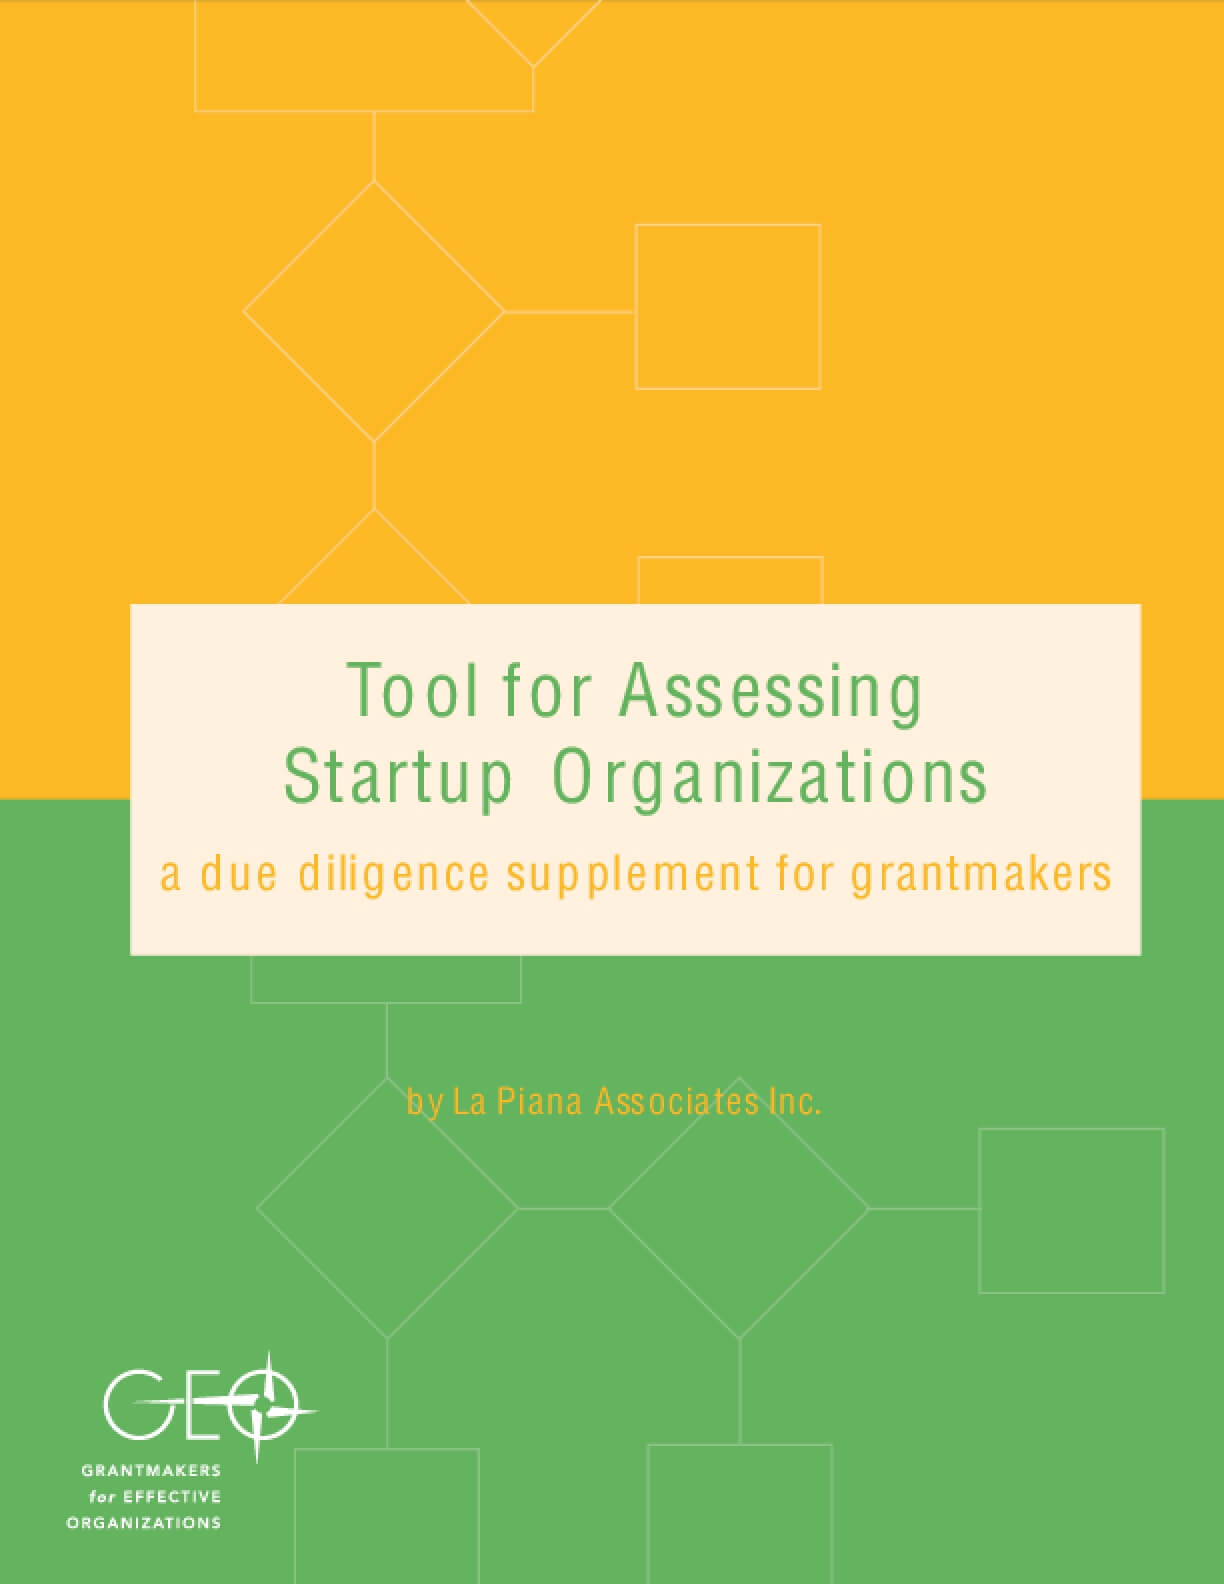 Tool for Assessing Startup Organizations: A Due Diligence Supplement for Grantmakers